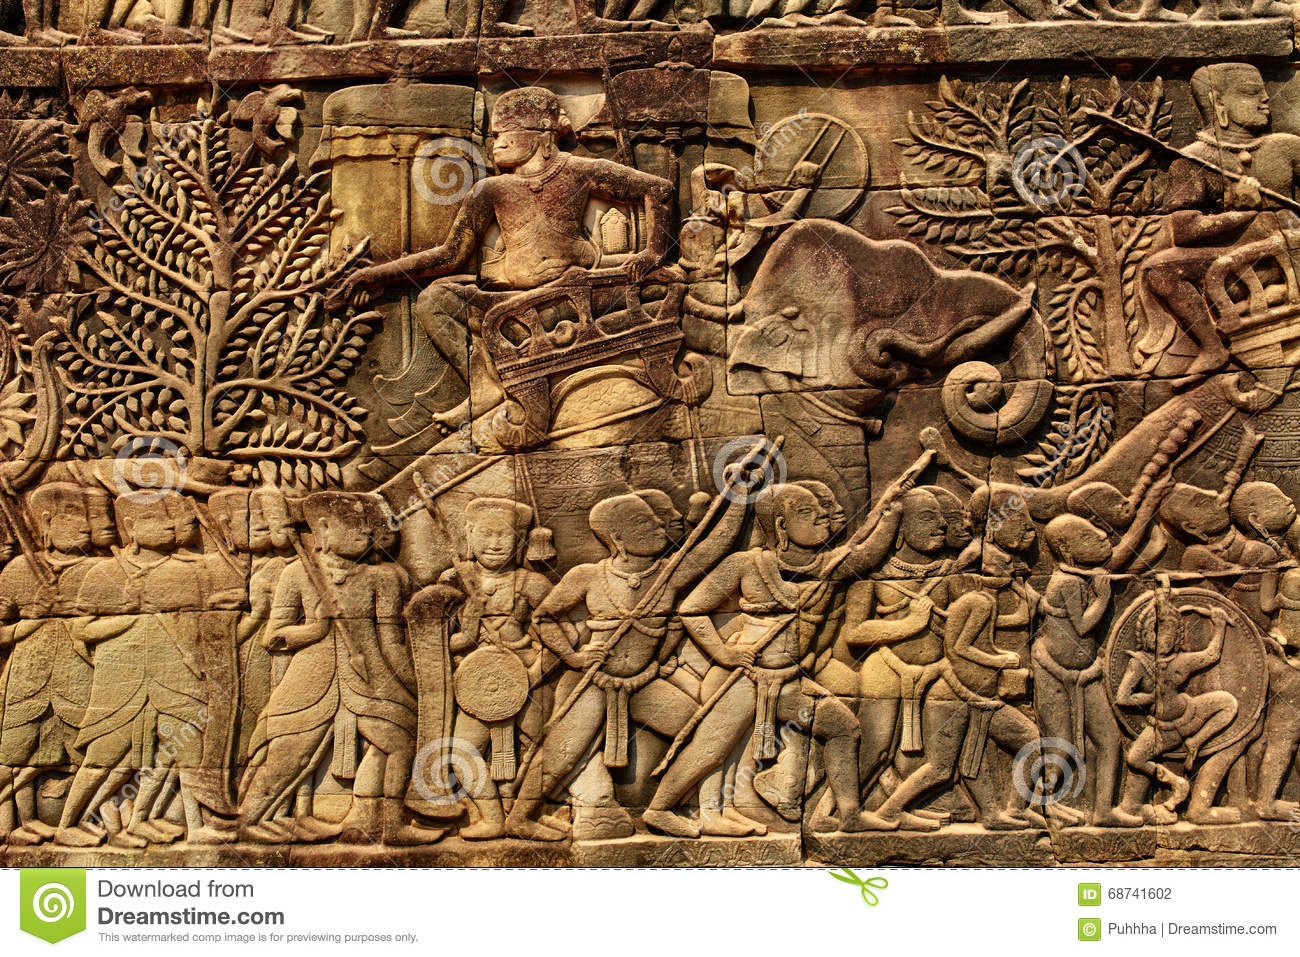 Cambodia architecture bayon khmer temple bas relief